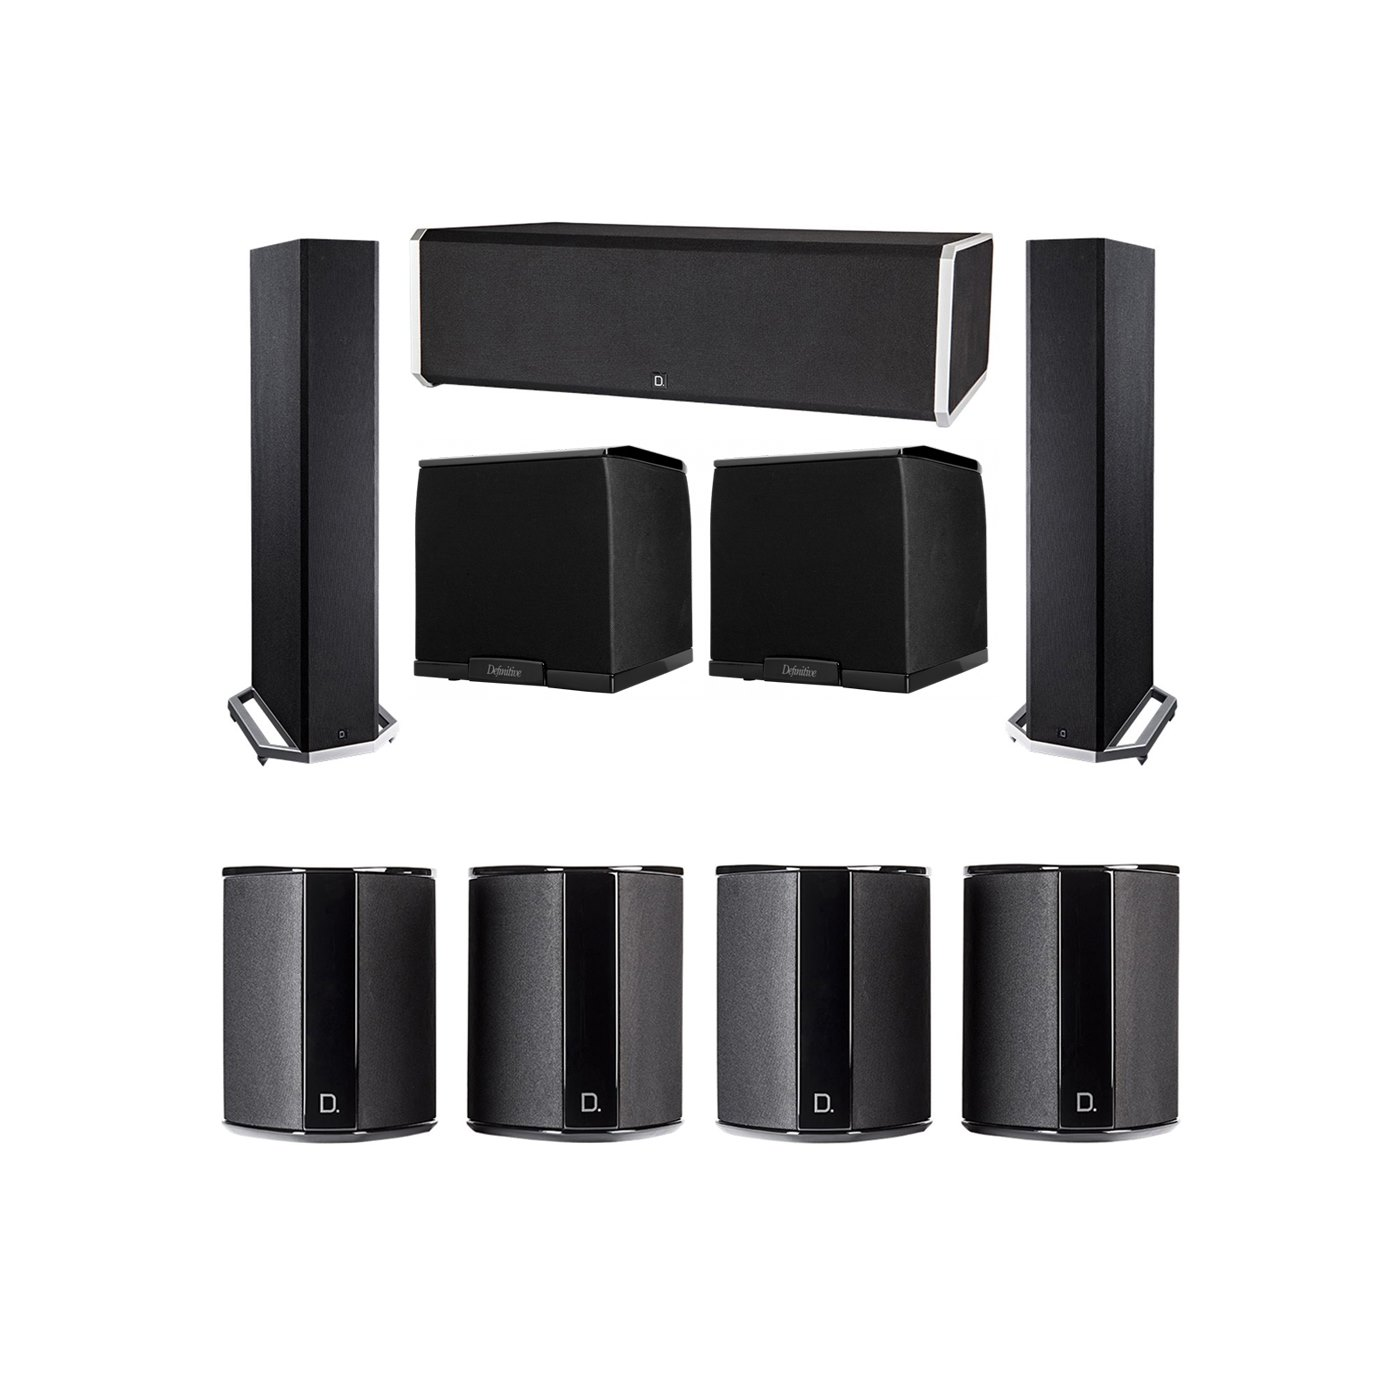 Definitive Technology 7.2 System with 2 BP9020 Tower Speakers, 1 CS9080 Center Channel Speaker, 4 SR9040 Surround Speaker, 2 Definitive Technology SuperCube 2000 Powered Subwoofer